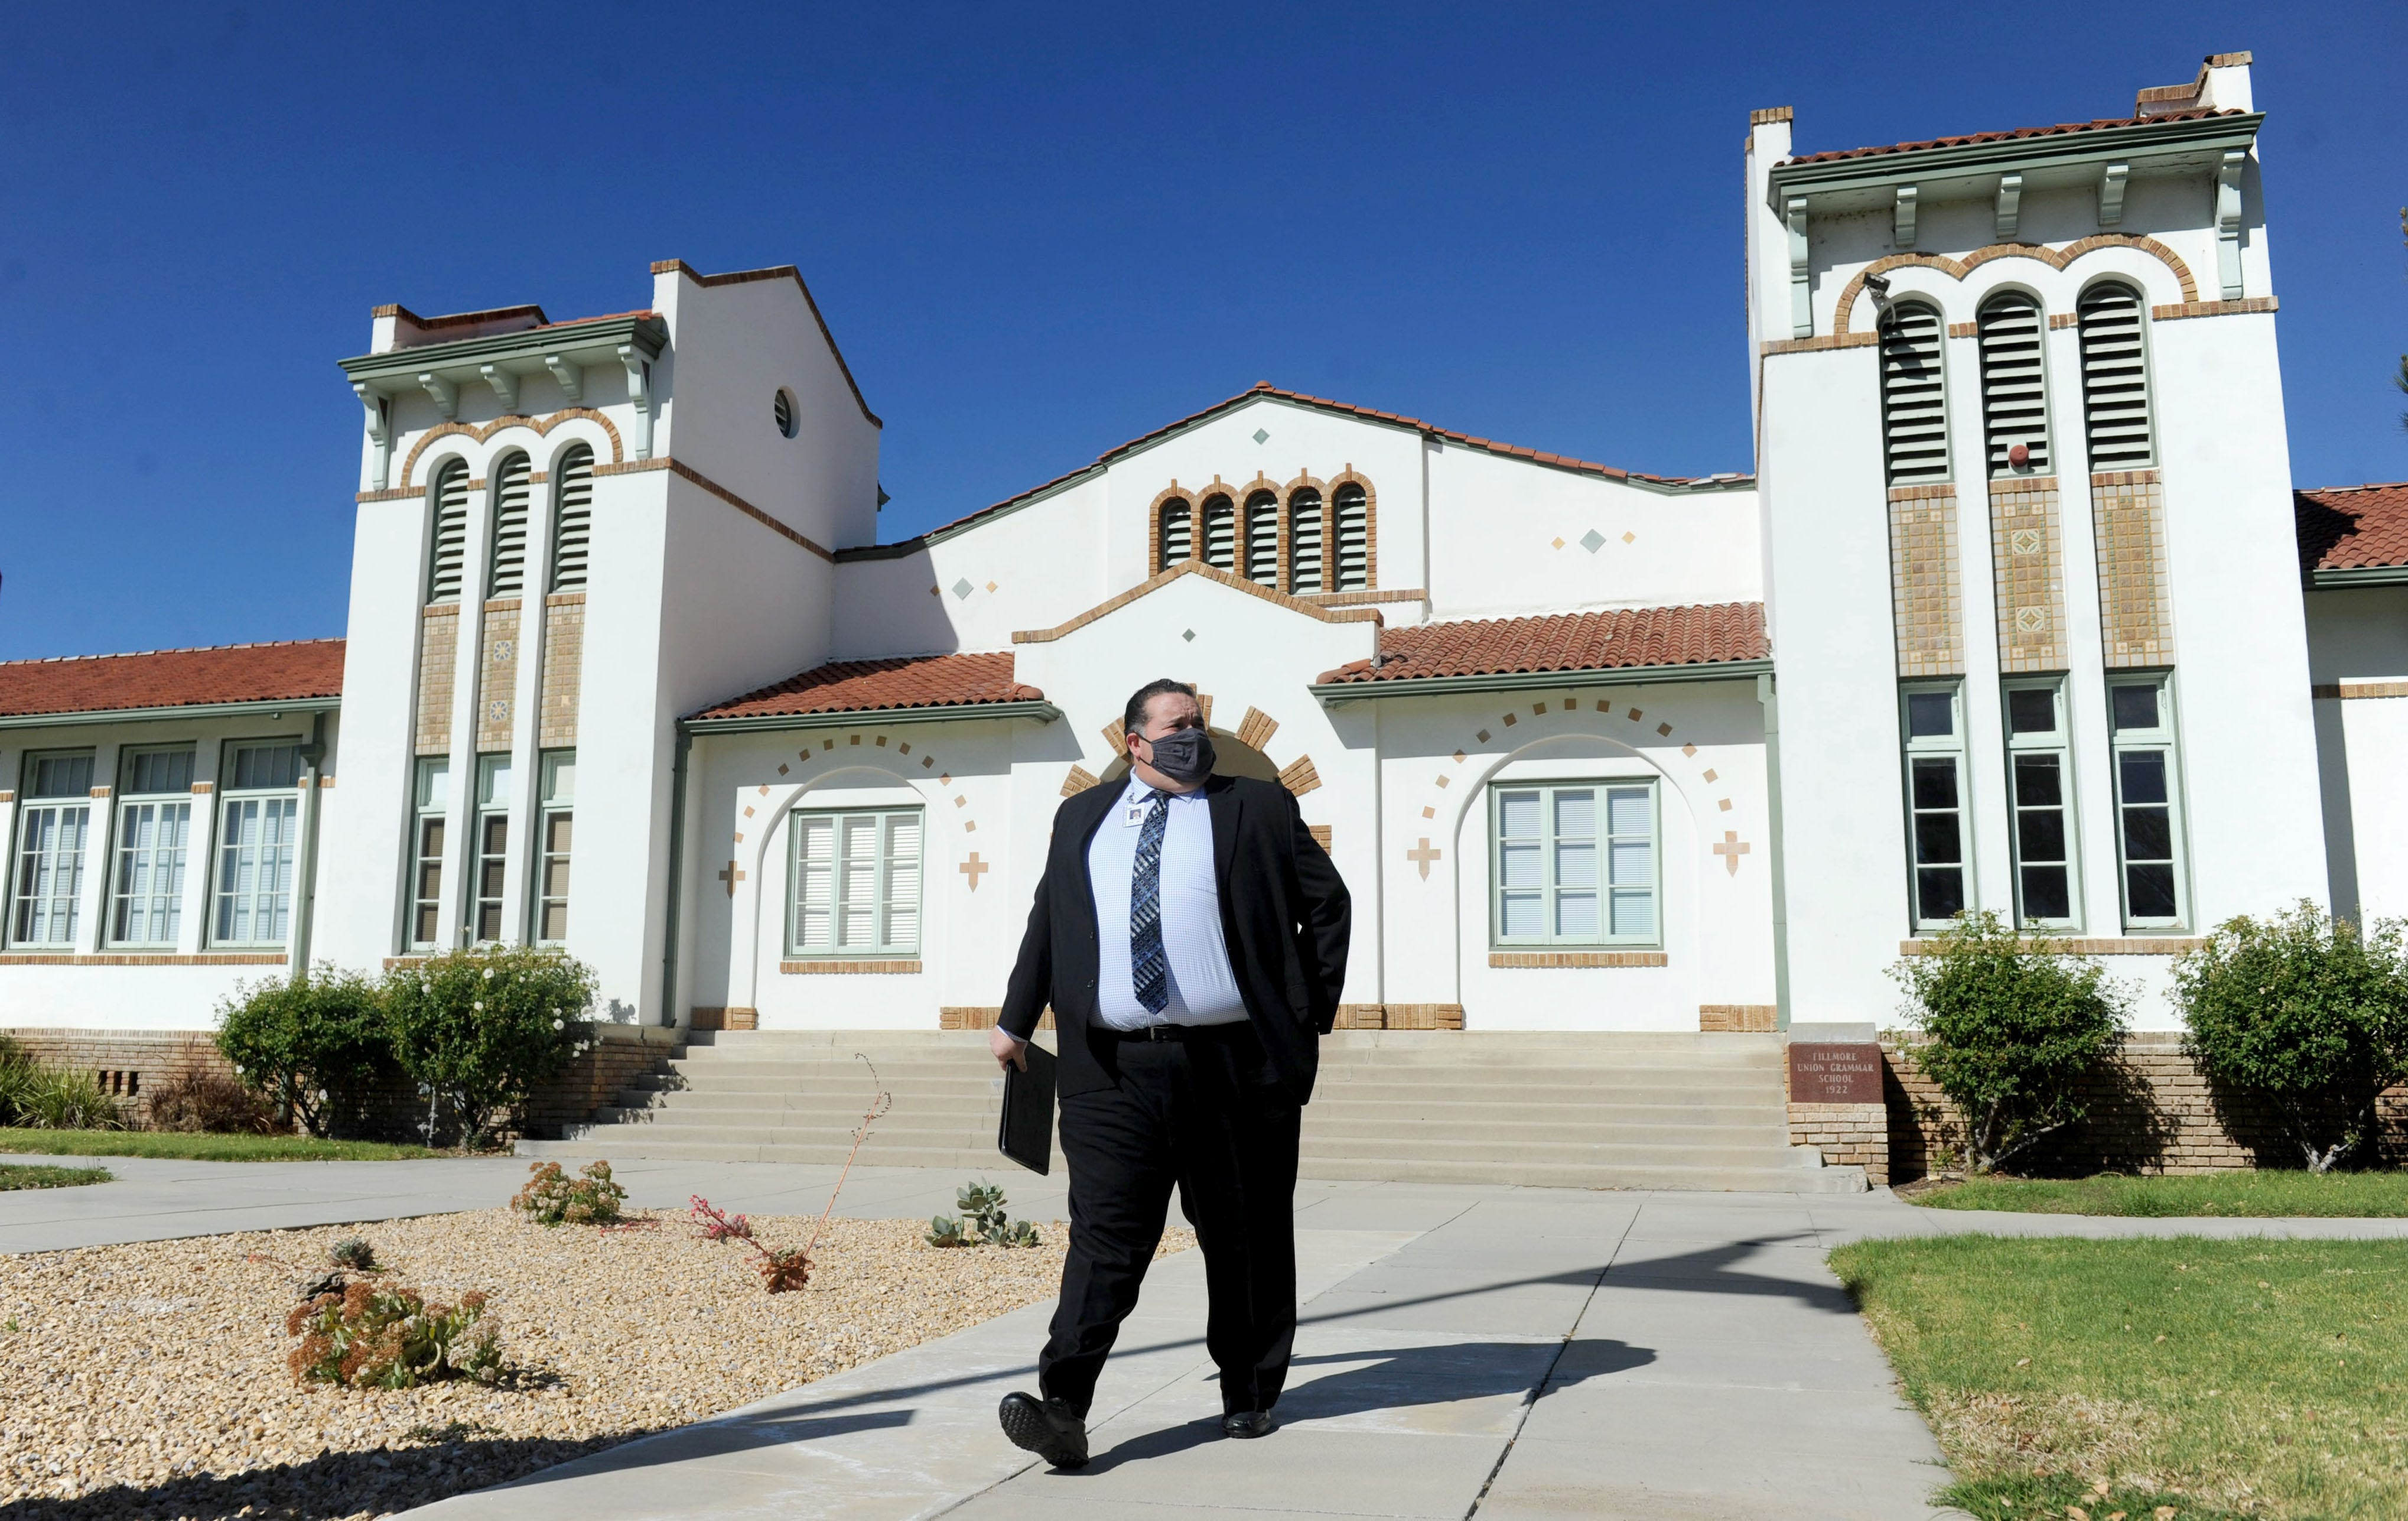 Fillmore Superintendent Adrian Palazuelos, who stepped down recently, walks out of his office on Friday, Feb. 5, 2021, at Fillmore Unified School District.